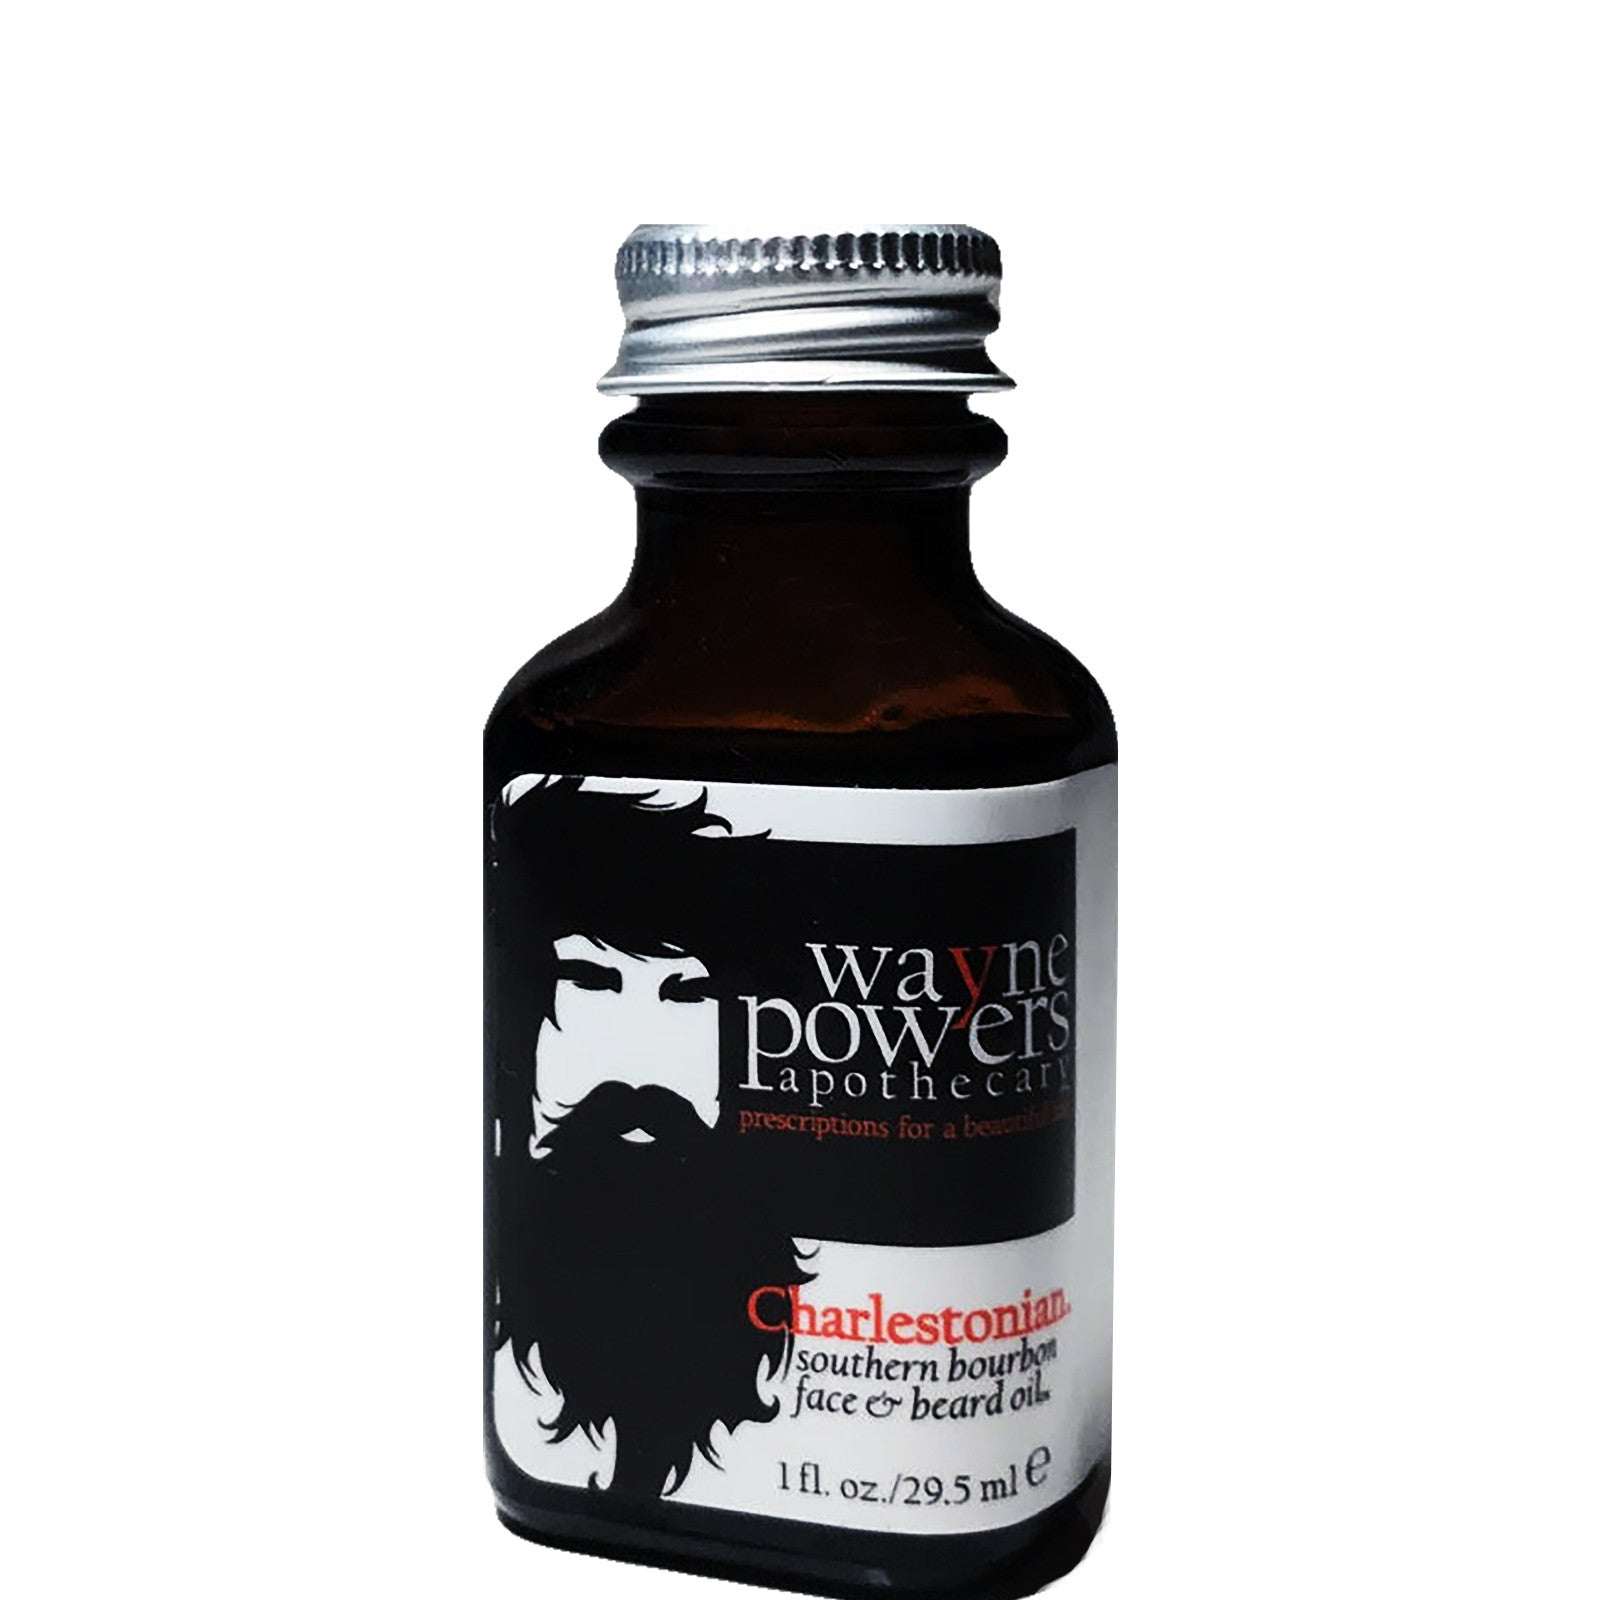 Charlestonian Southern Bourbon Face & Beard Oil by Wayne Powers Apothecary